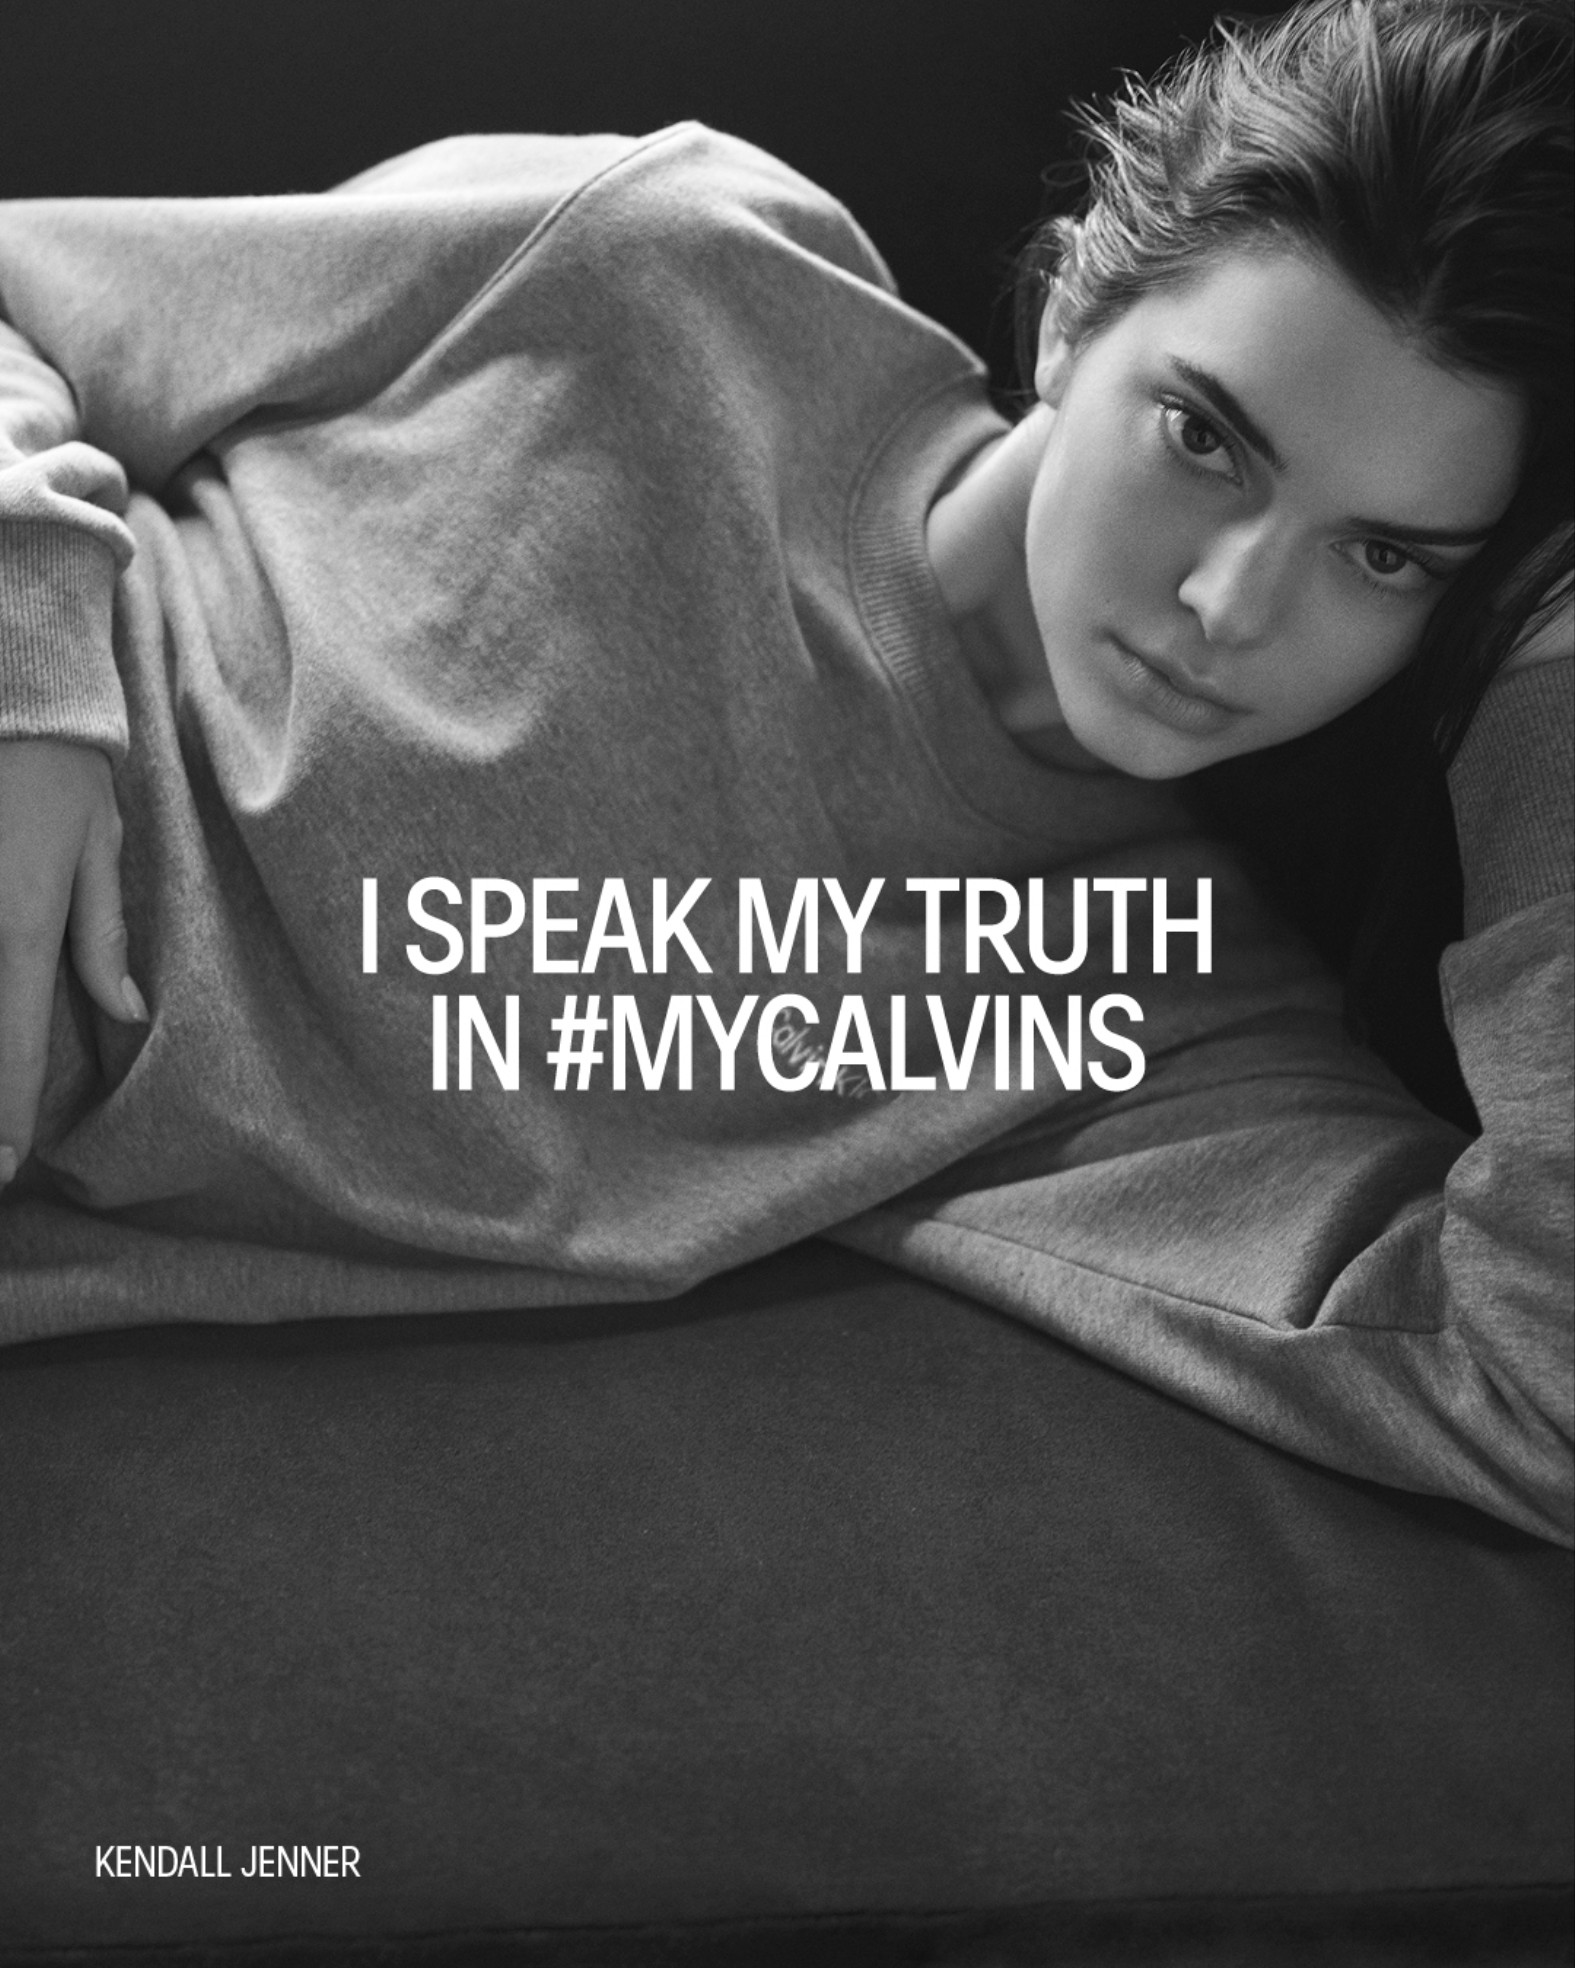 Real & Virtual Collide in Bella Hadid & Kendall Jenner's 'I Speak My Truth' Calvin Klein ad campaign